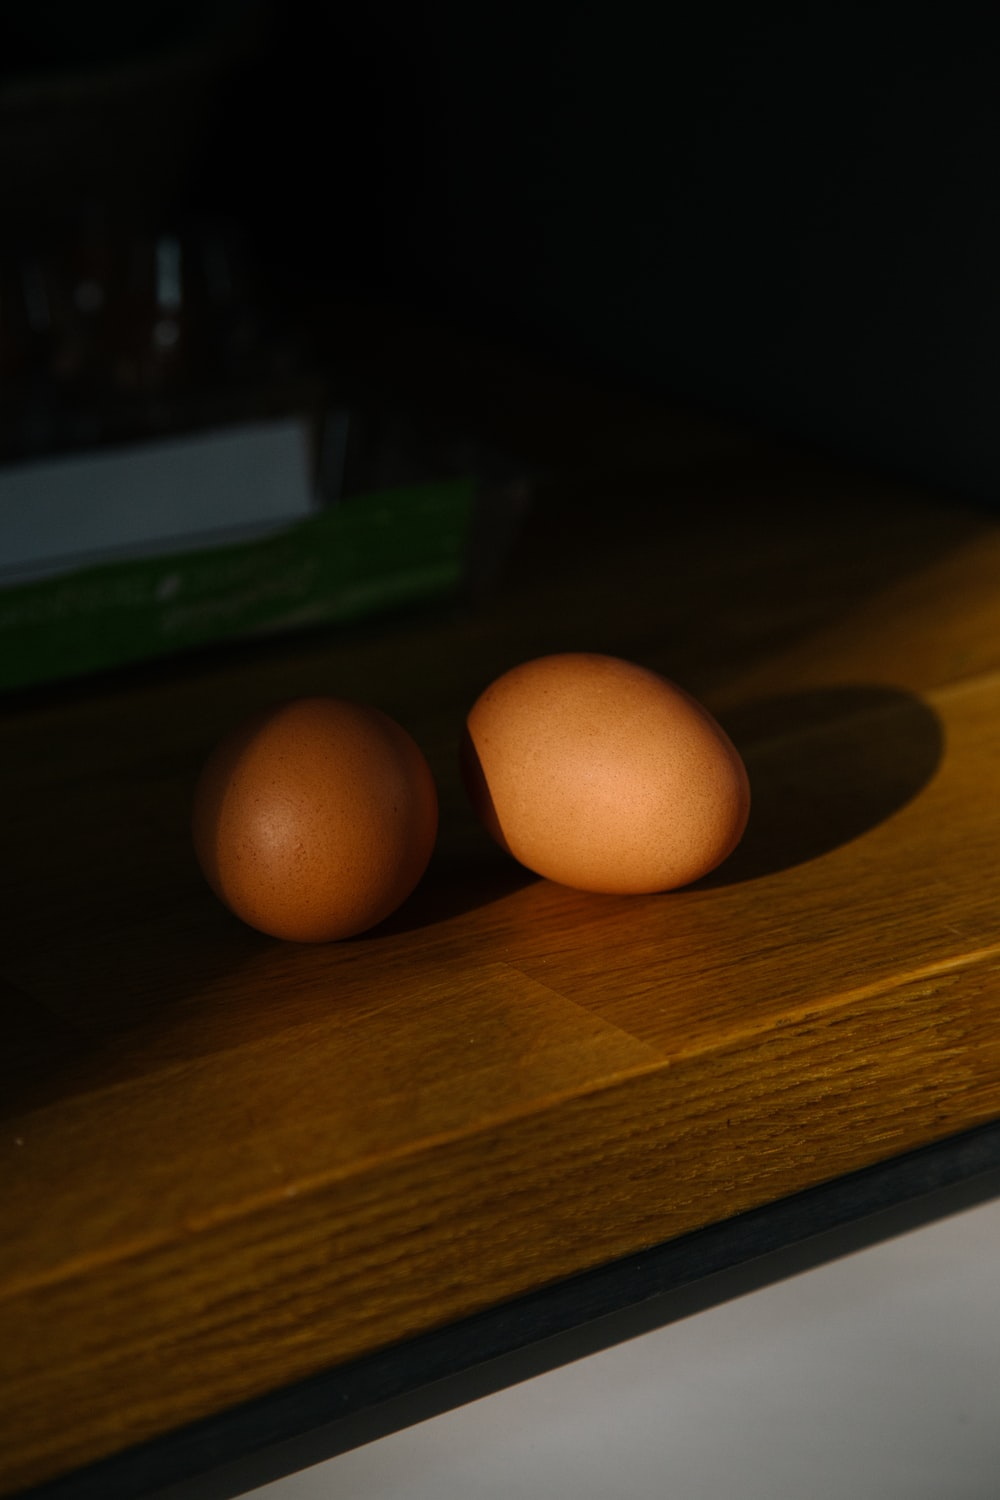 two organic eggs on brown table